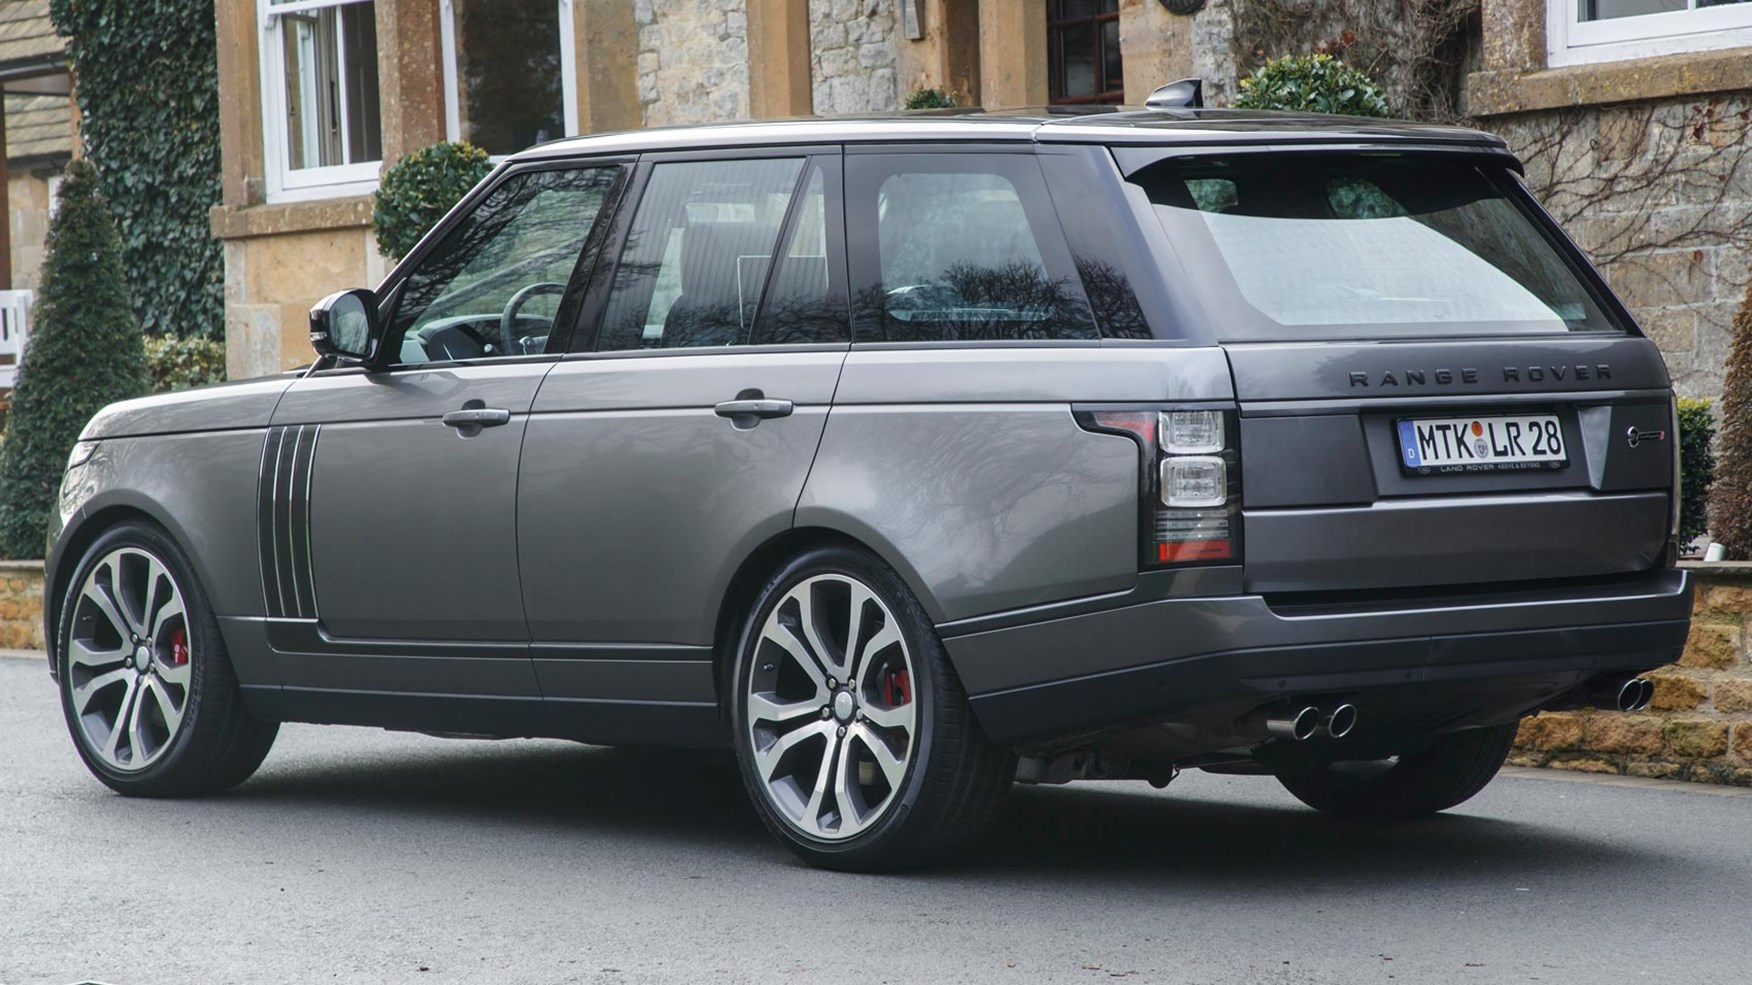 0 Down Lease Deals >> Range Rover SVAutobiography Dynamic (2017) review by CAR Magazine